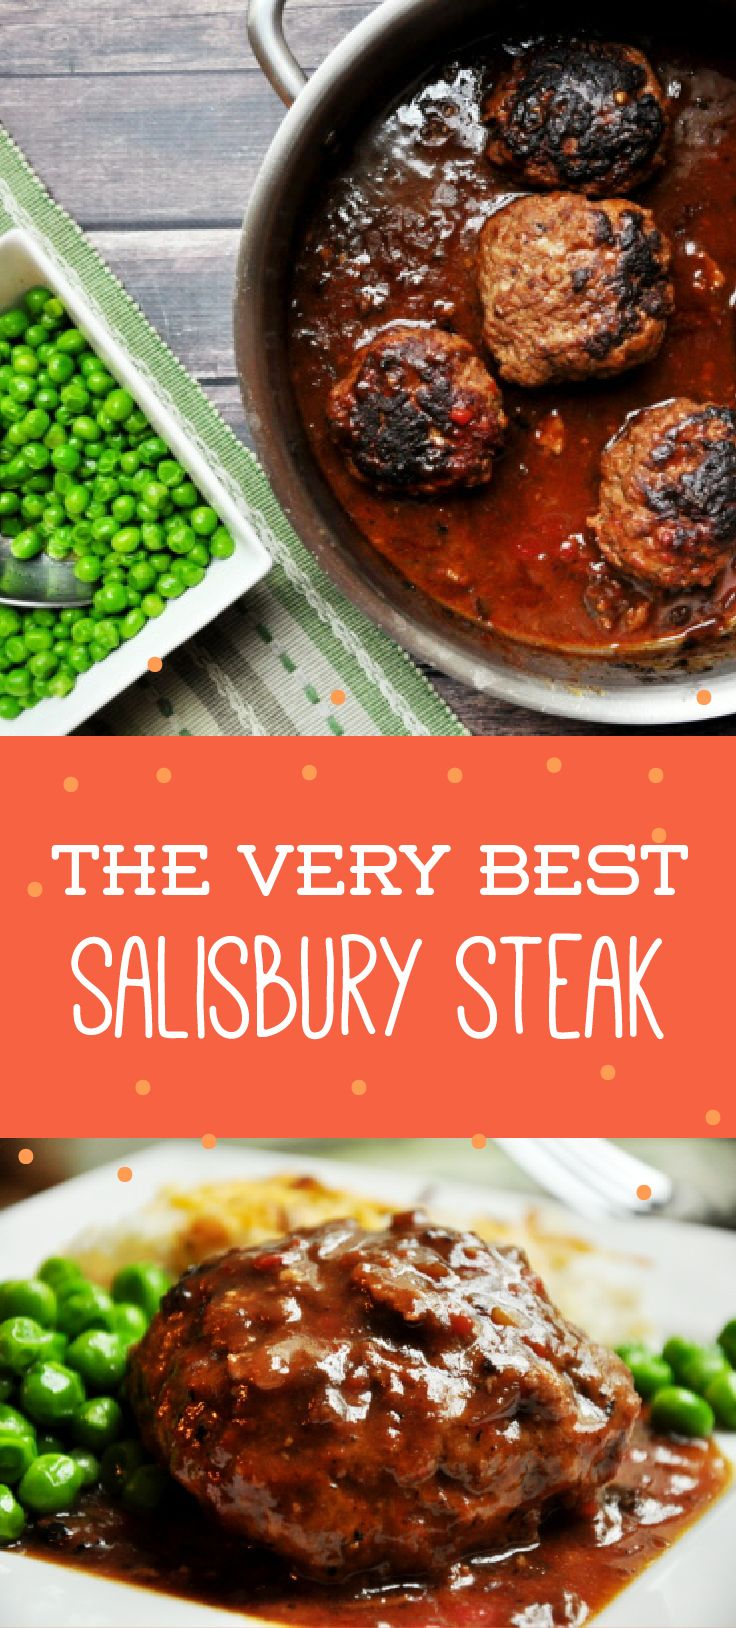 The name doesn't lie with this recipe for The Very Best Salisbury Steak.